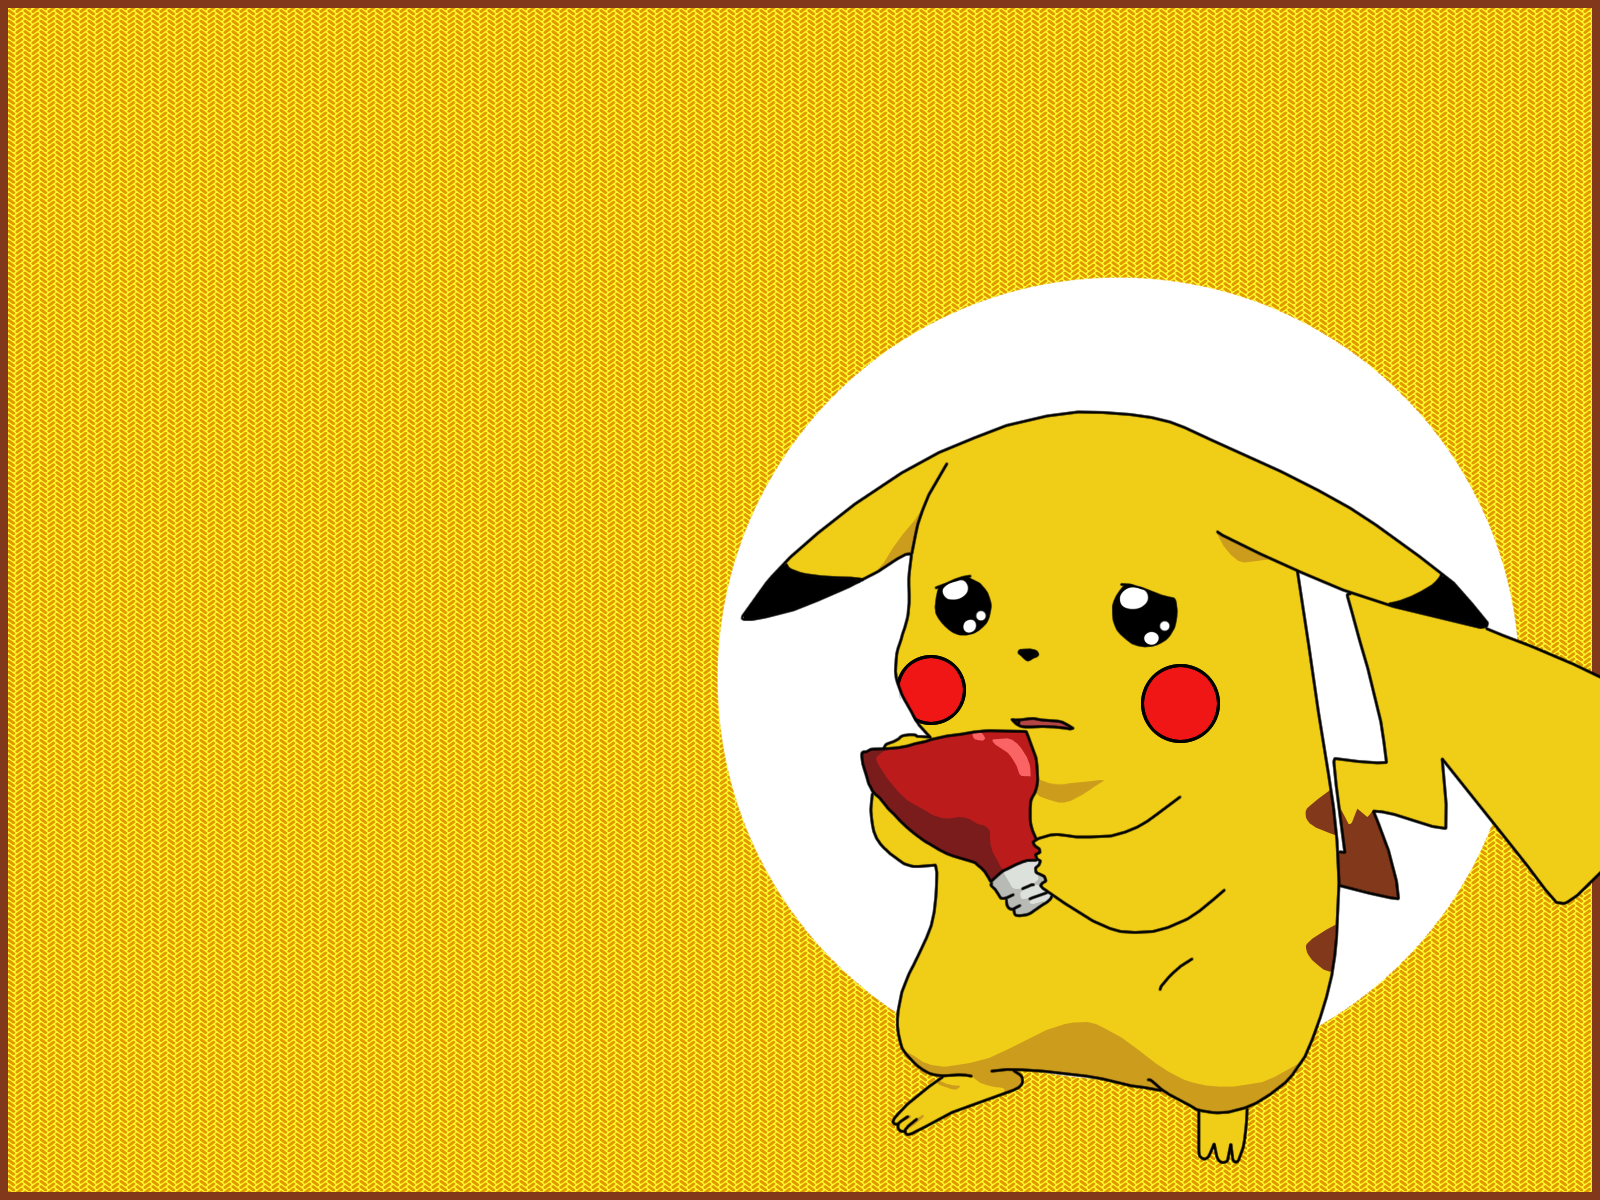 Pokemon Pikachu Wallpaper 1600x1200 Pokemon Pikachu 1600x1200